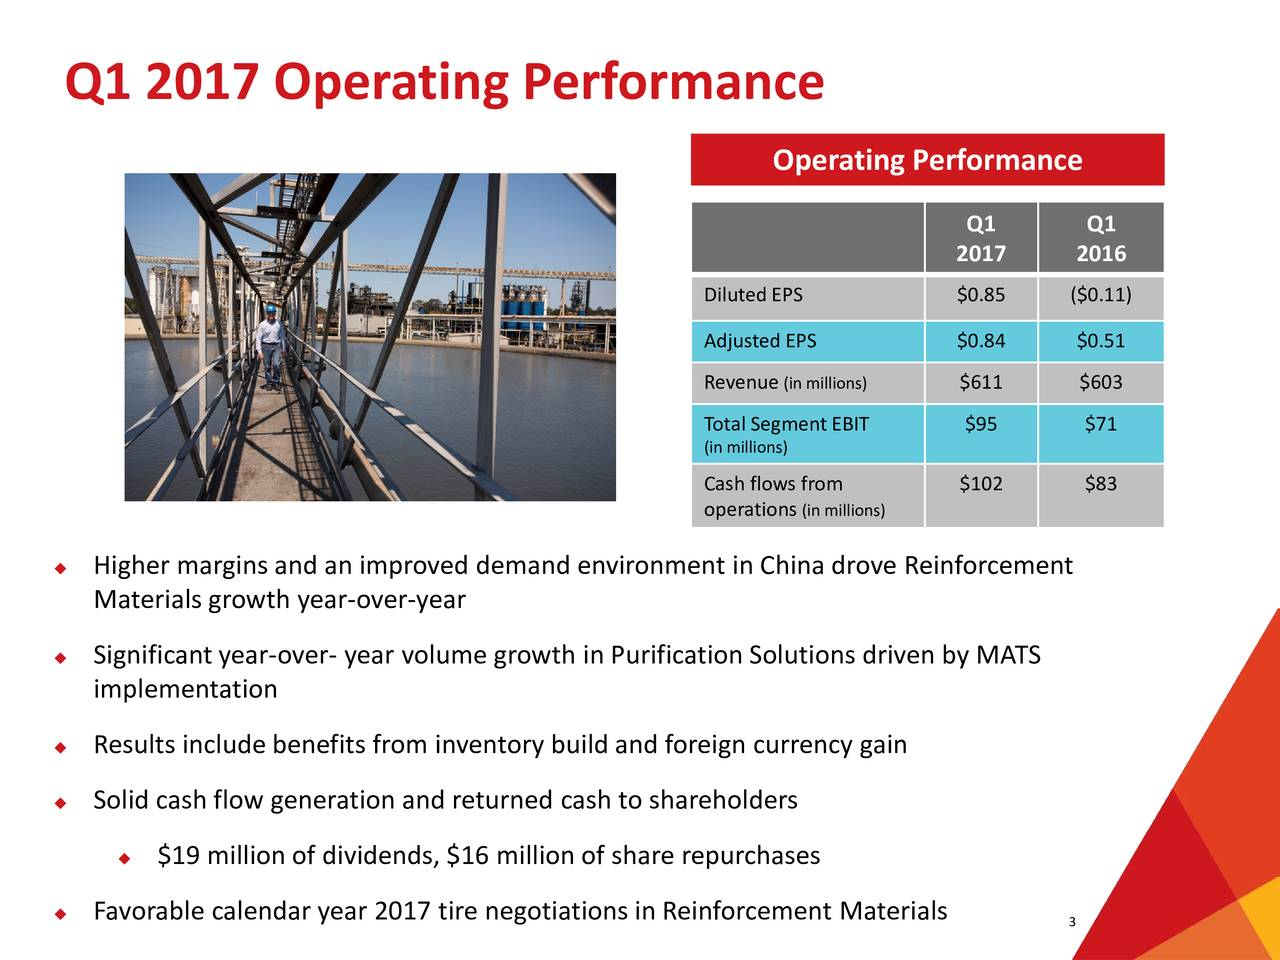 Operating Performance Q1 Q1 2017 2016 Diluted EPS $0.85 ($0.11) Adjusted EPS $0.84 $0.51 Revenue(in millions) $611 $603 Total Segment EBIT $95 $71 (in millions) Cash flows from $102 $83 operation(in millions) Higher margins and an improved demand environment in China drove Reinforcement Materials growth year-over-year Significant year-over- year volume growth in Purification Solutions driven by MATS implementation Results include benefits from inventory build and foreign currency gain Solid cash flow generation and returned cash toshareholders $19 million of dividends, $16 million of share repurchases Favorable calendar year 2017 tire negotiations in Reinforcement Materials 3